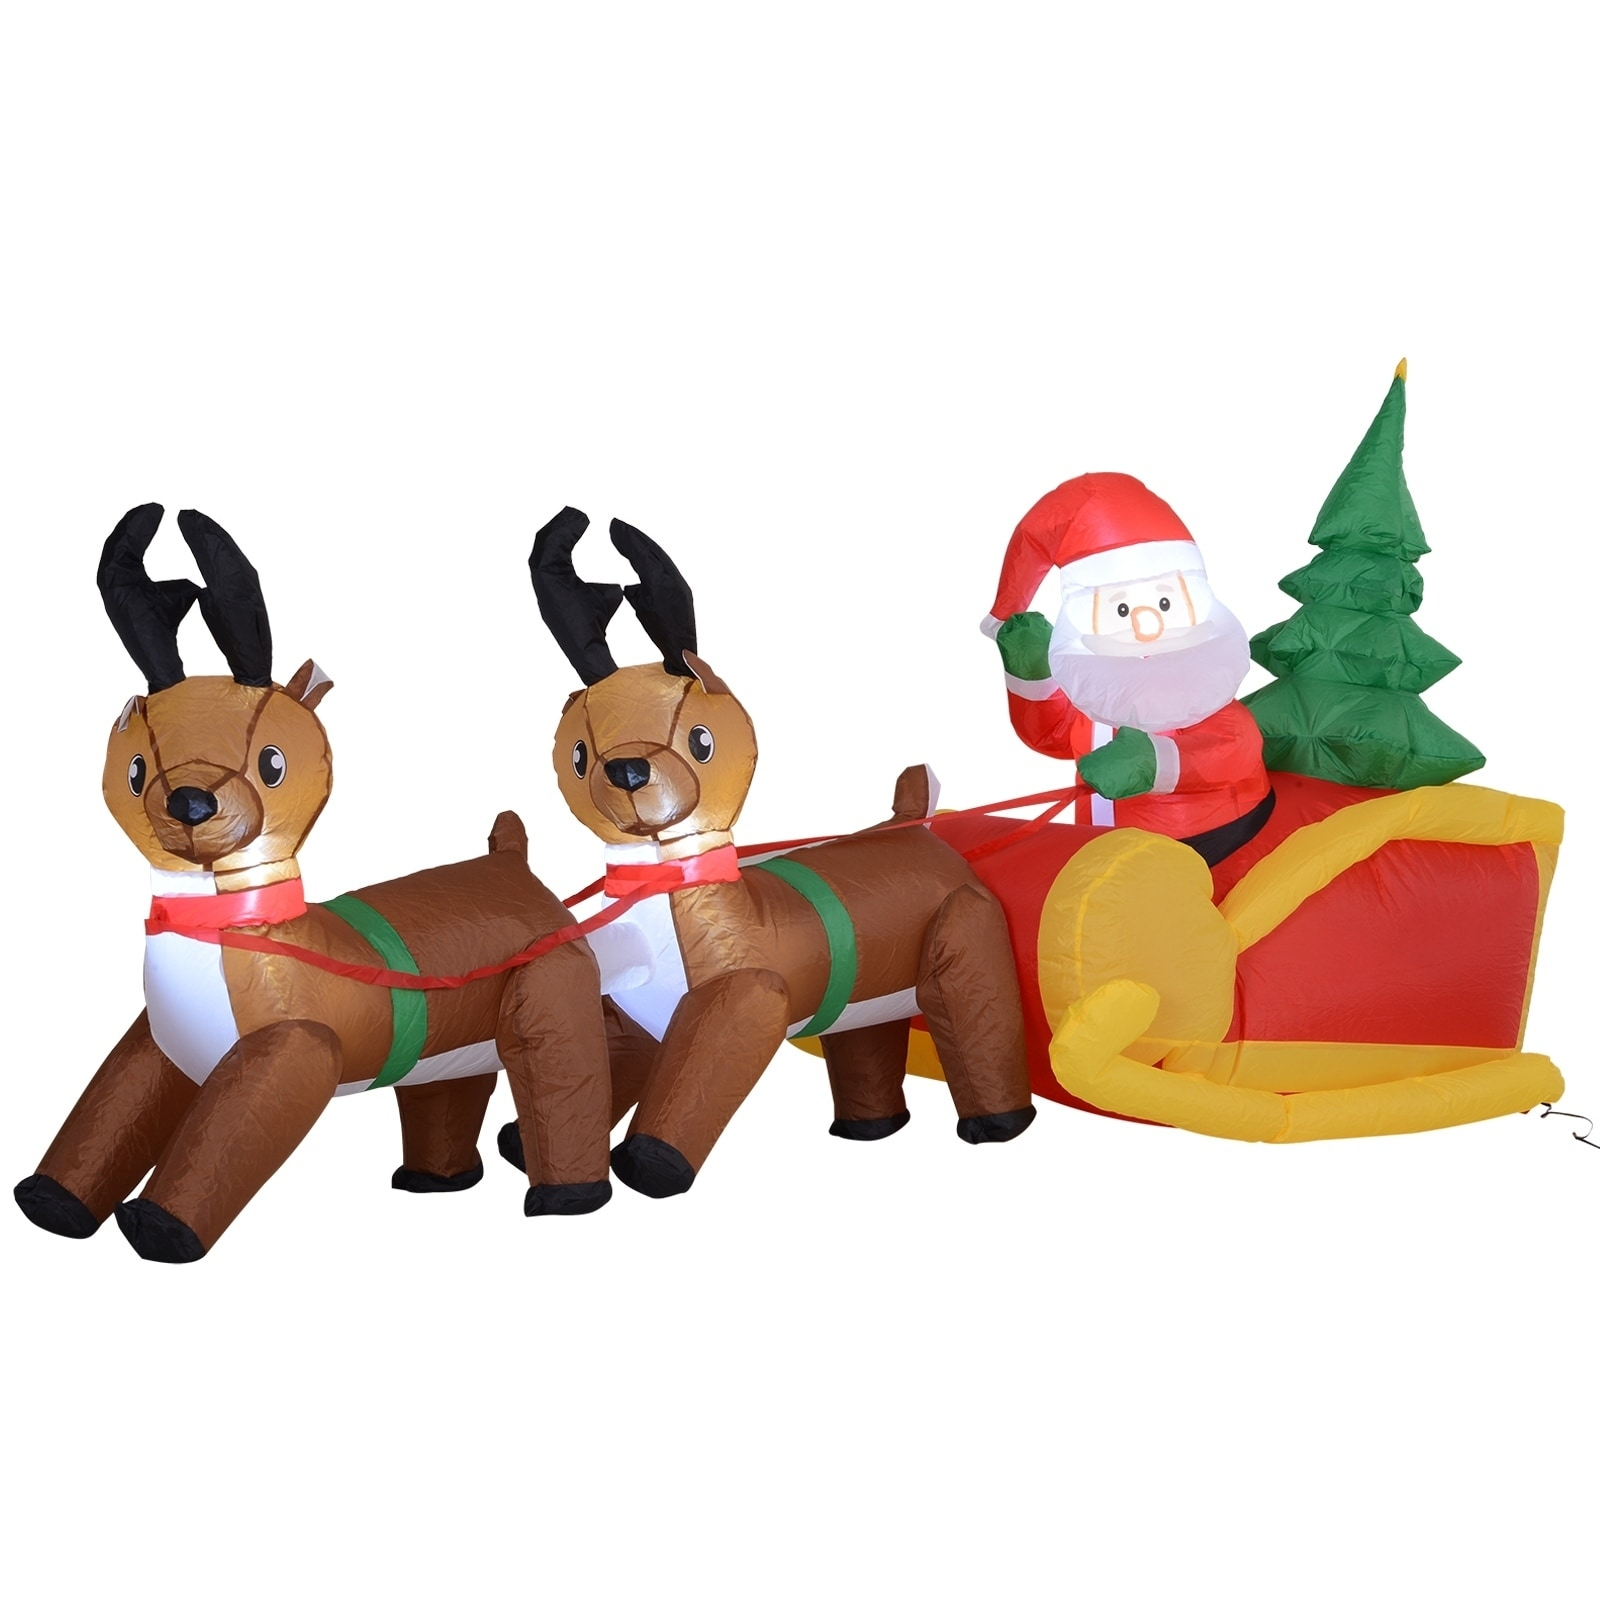 Shop 7 Long Outdoor Lighted Airblown Inflatable Christmas Lawn Decoration Santa S Sleigh Reindeer Overstock 14256269